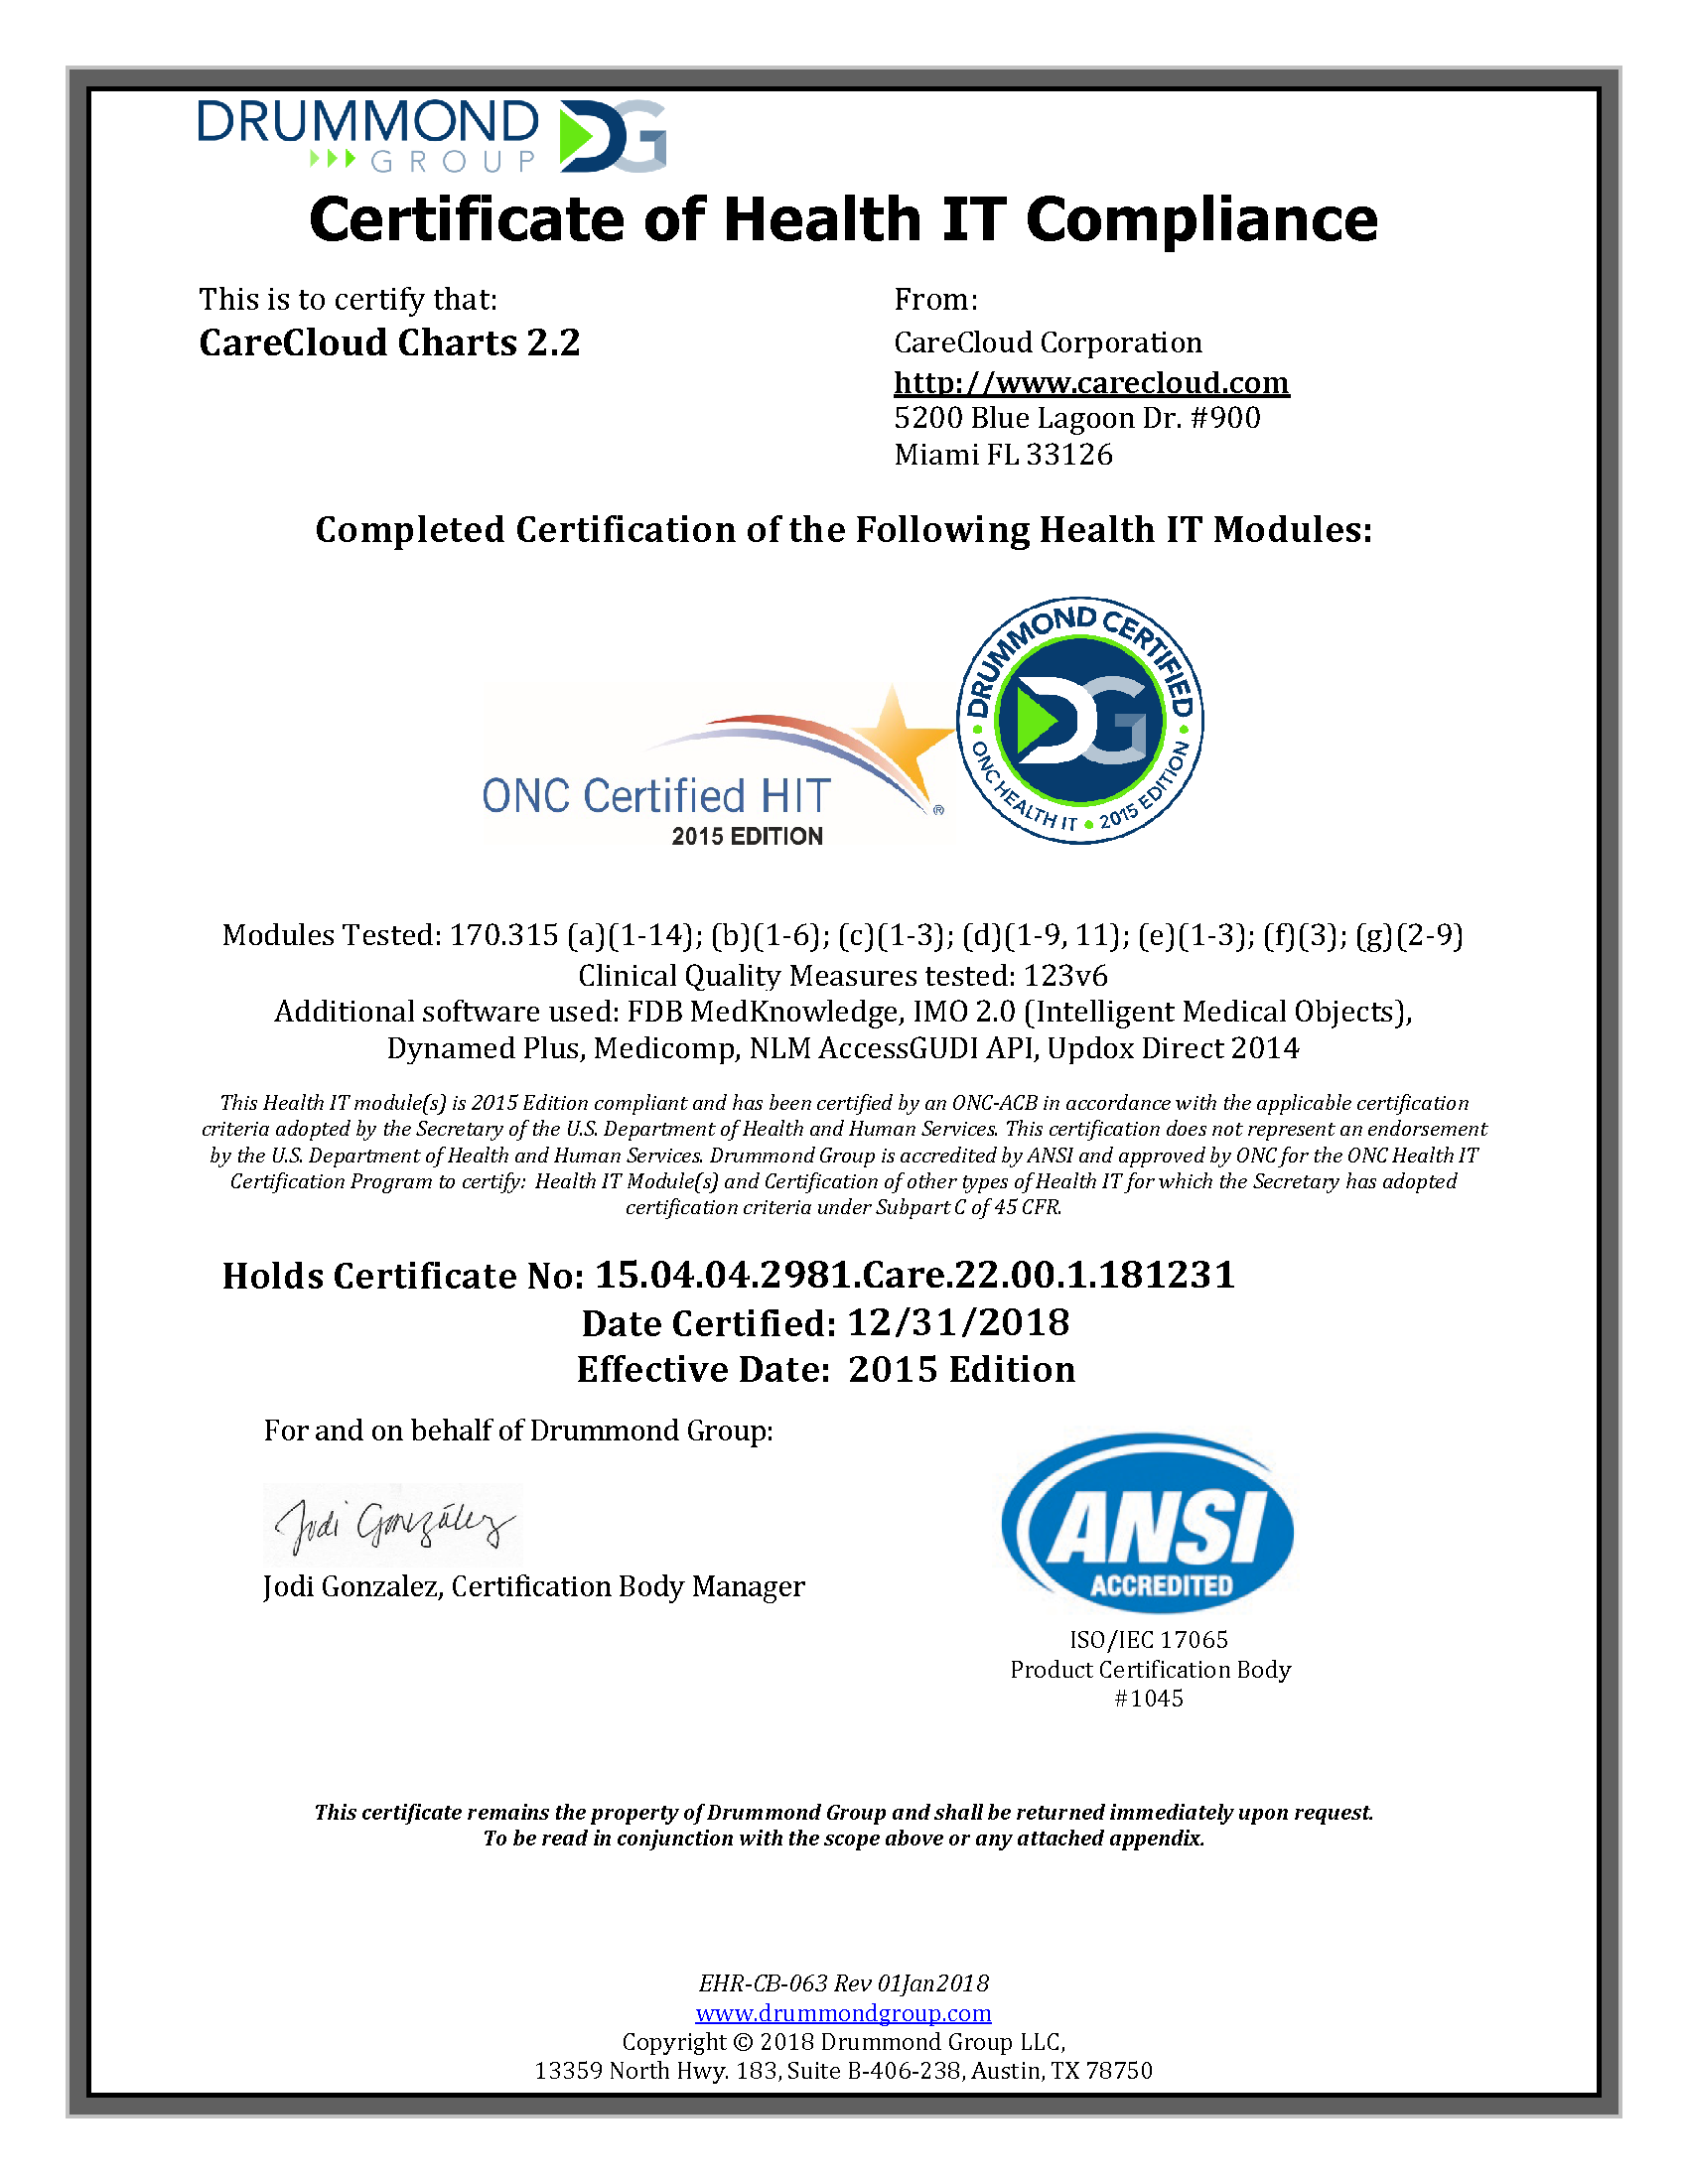 Drummond Group Certificate of Health IT Compliance